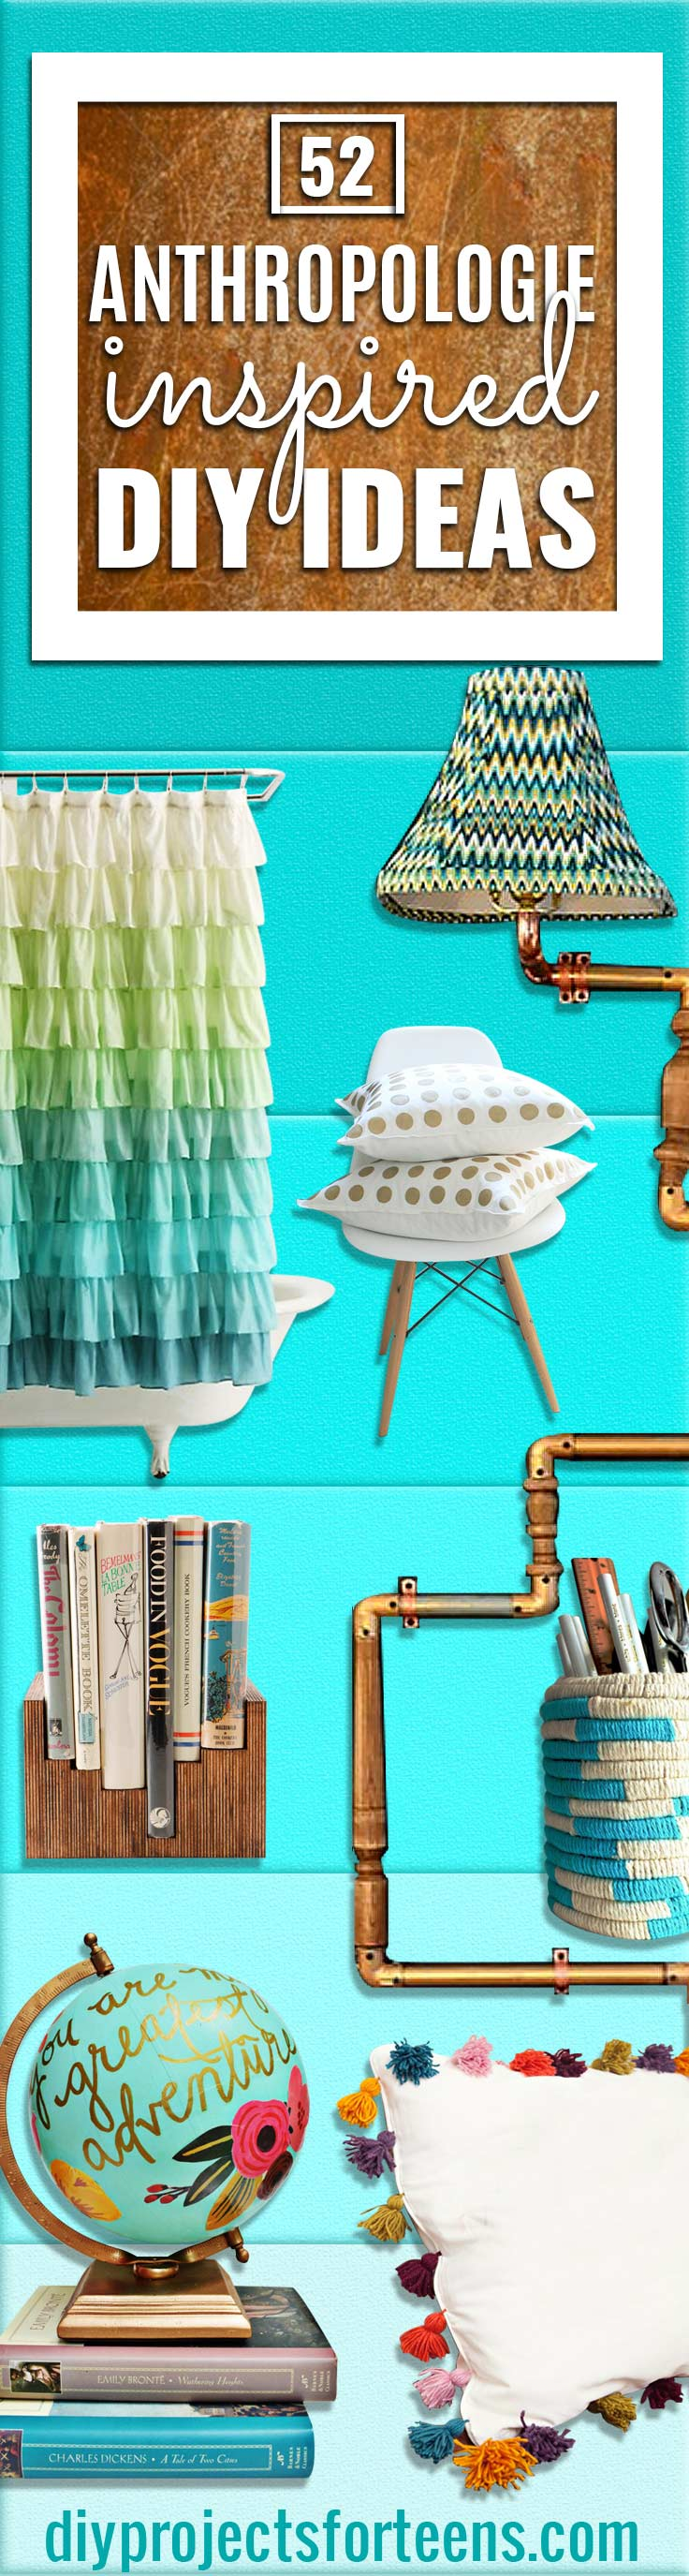 Apartment Anthropologie Armoire - anthropologie-inspired-crafts-diy-hacks_Download Apartment Anthropologie Armoire - anthropologie-inspired-crafts-diy-hacks  Best Photo Reference_713067.jpg